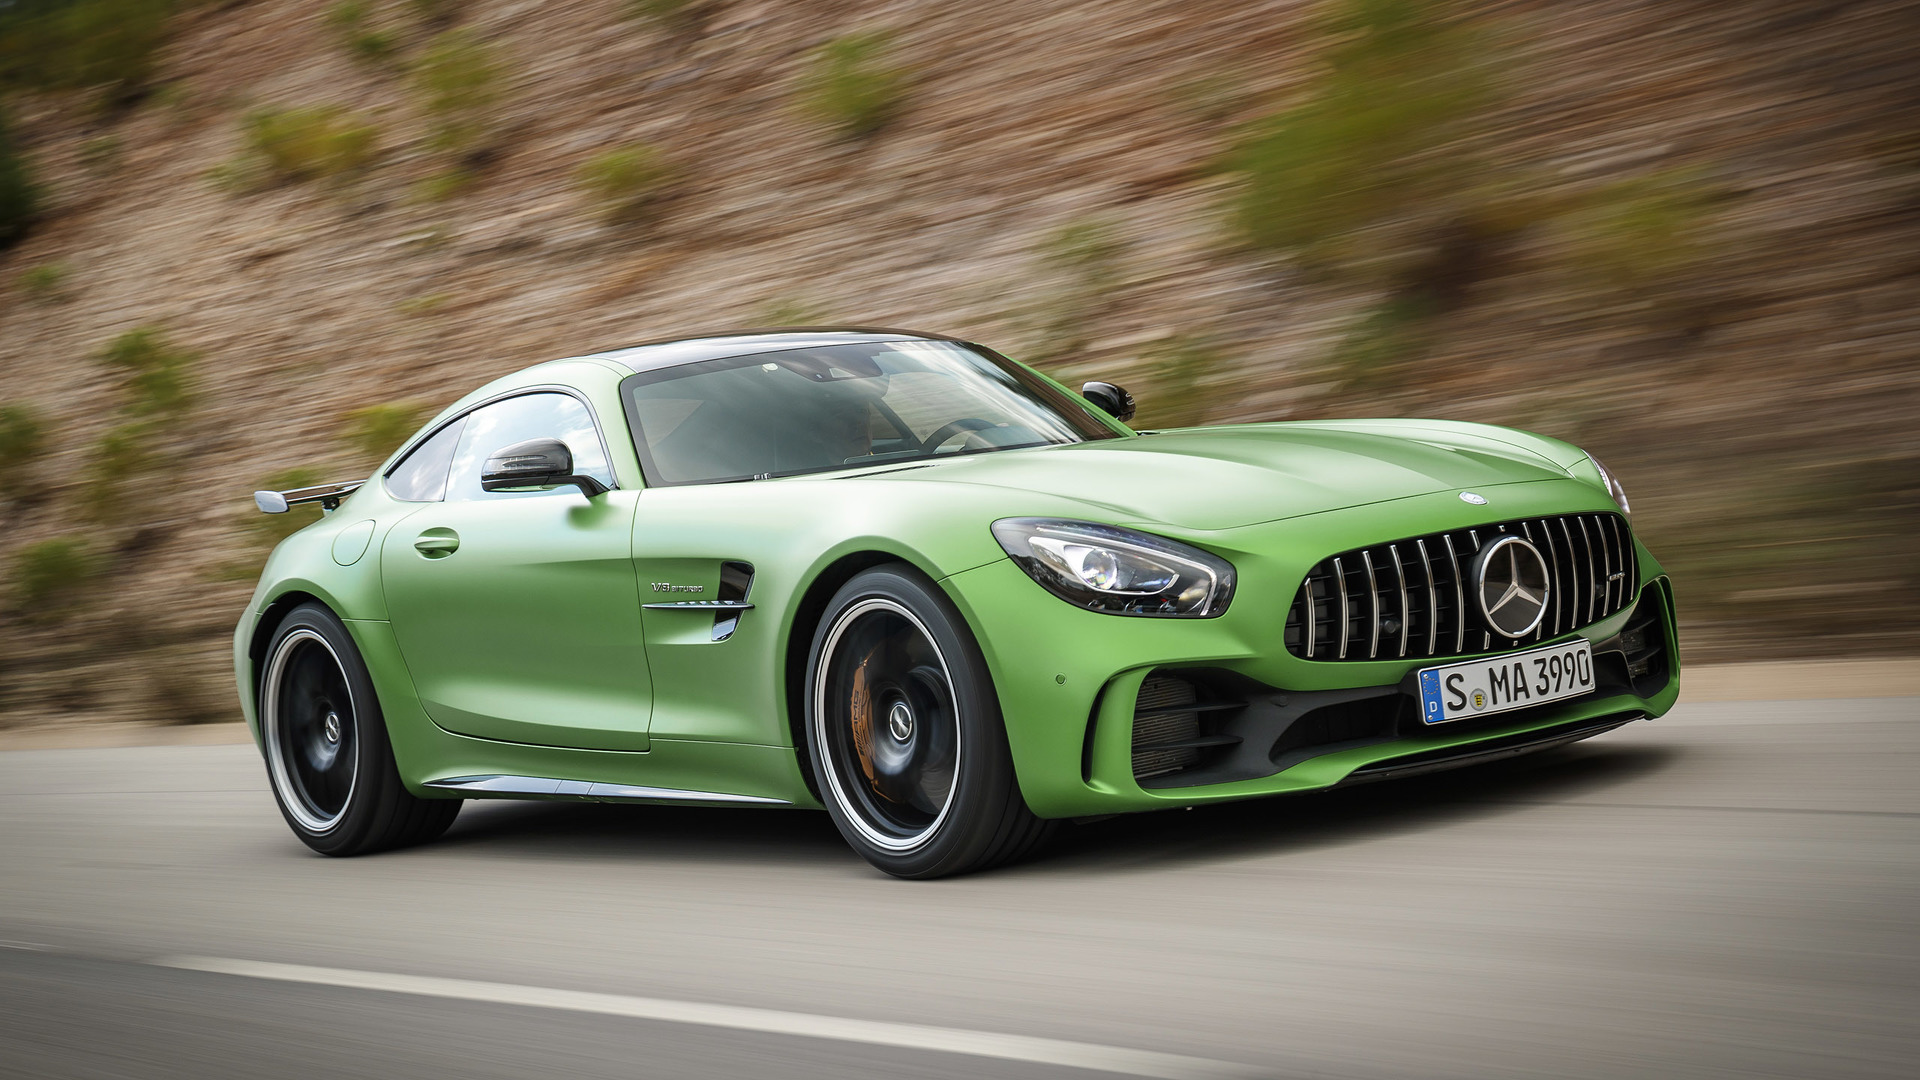 2018 mercedes amg gt r first drive the green monster of for Mercedes benz amg gt price